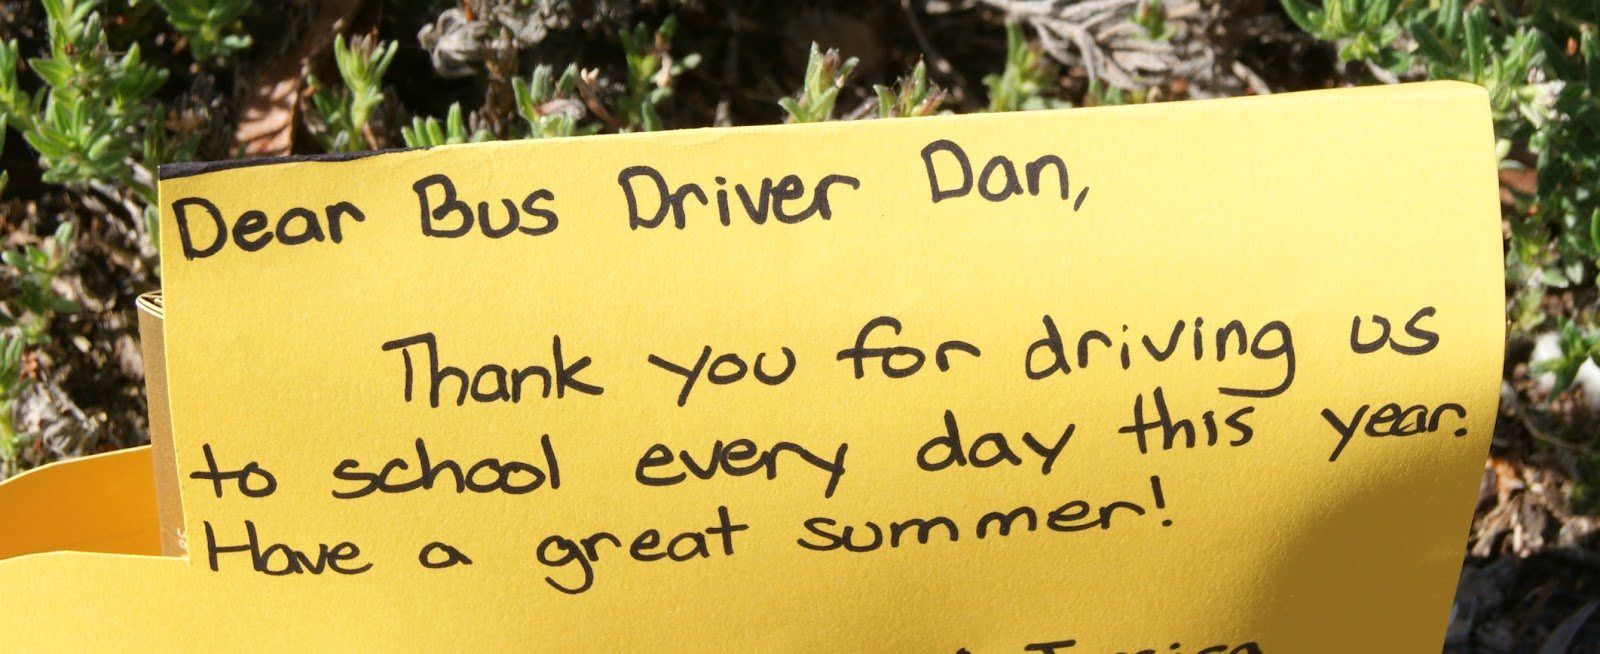 Thank You Letter Coach From Parents Appreciation Sample For Accountants  Message Environmental Lawyer What Write Card